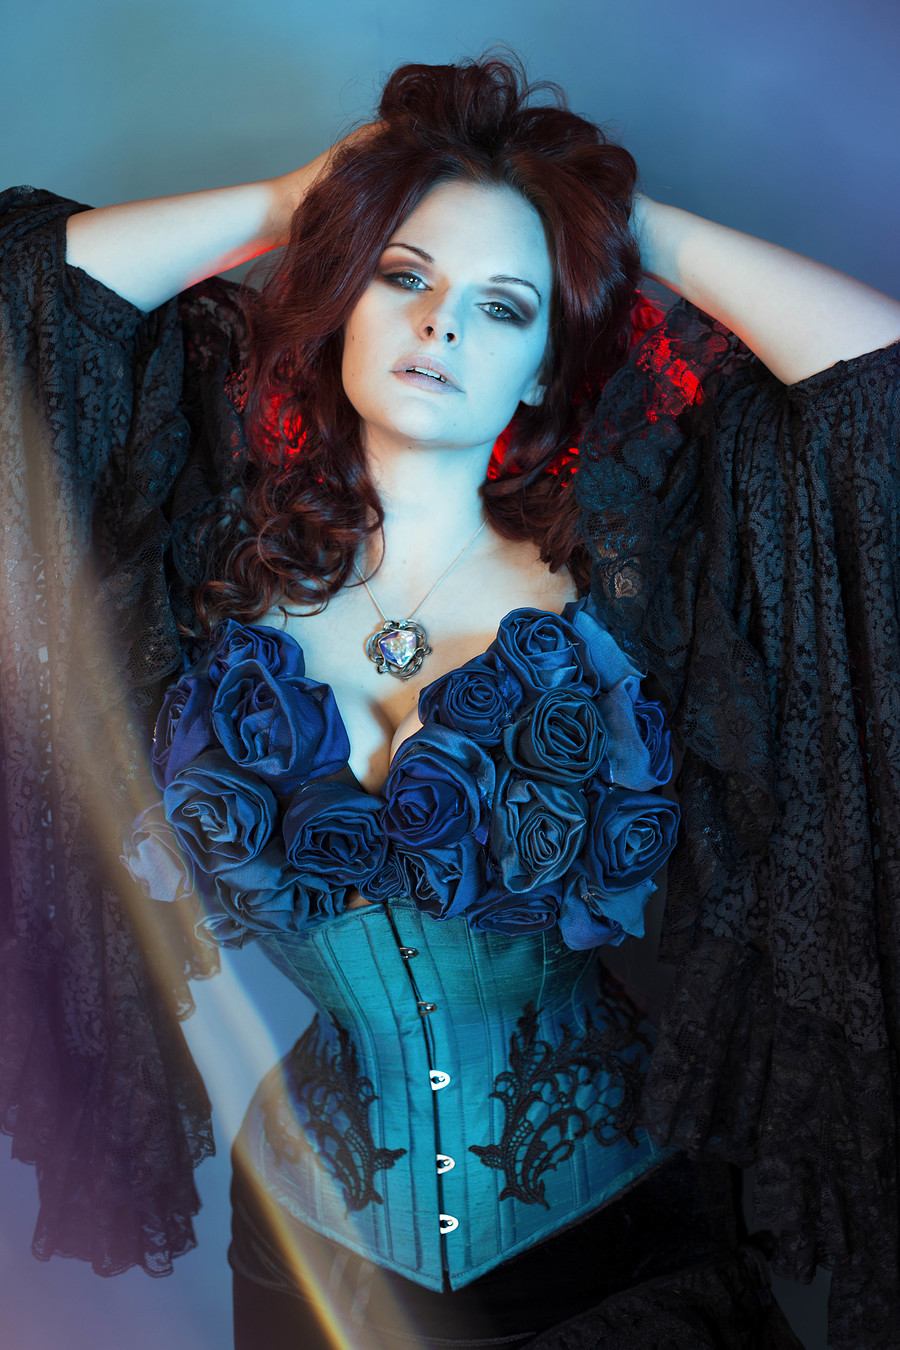 Photography by EarlGreyHot, Model EvieWolfe, Designer Valkyrie Corsets / Uploaded 2nd September 2019 @ 02:59 PM